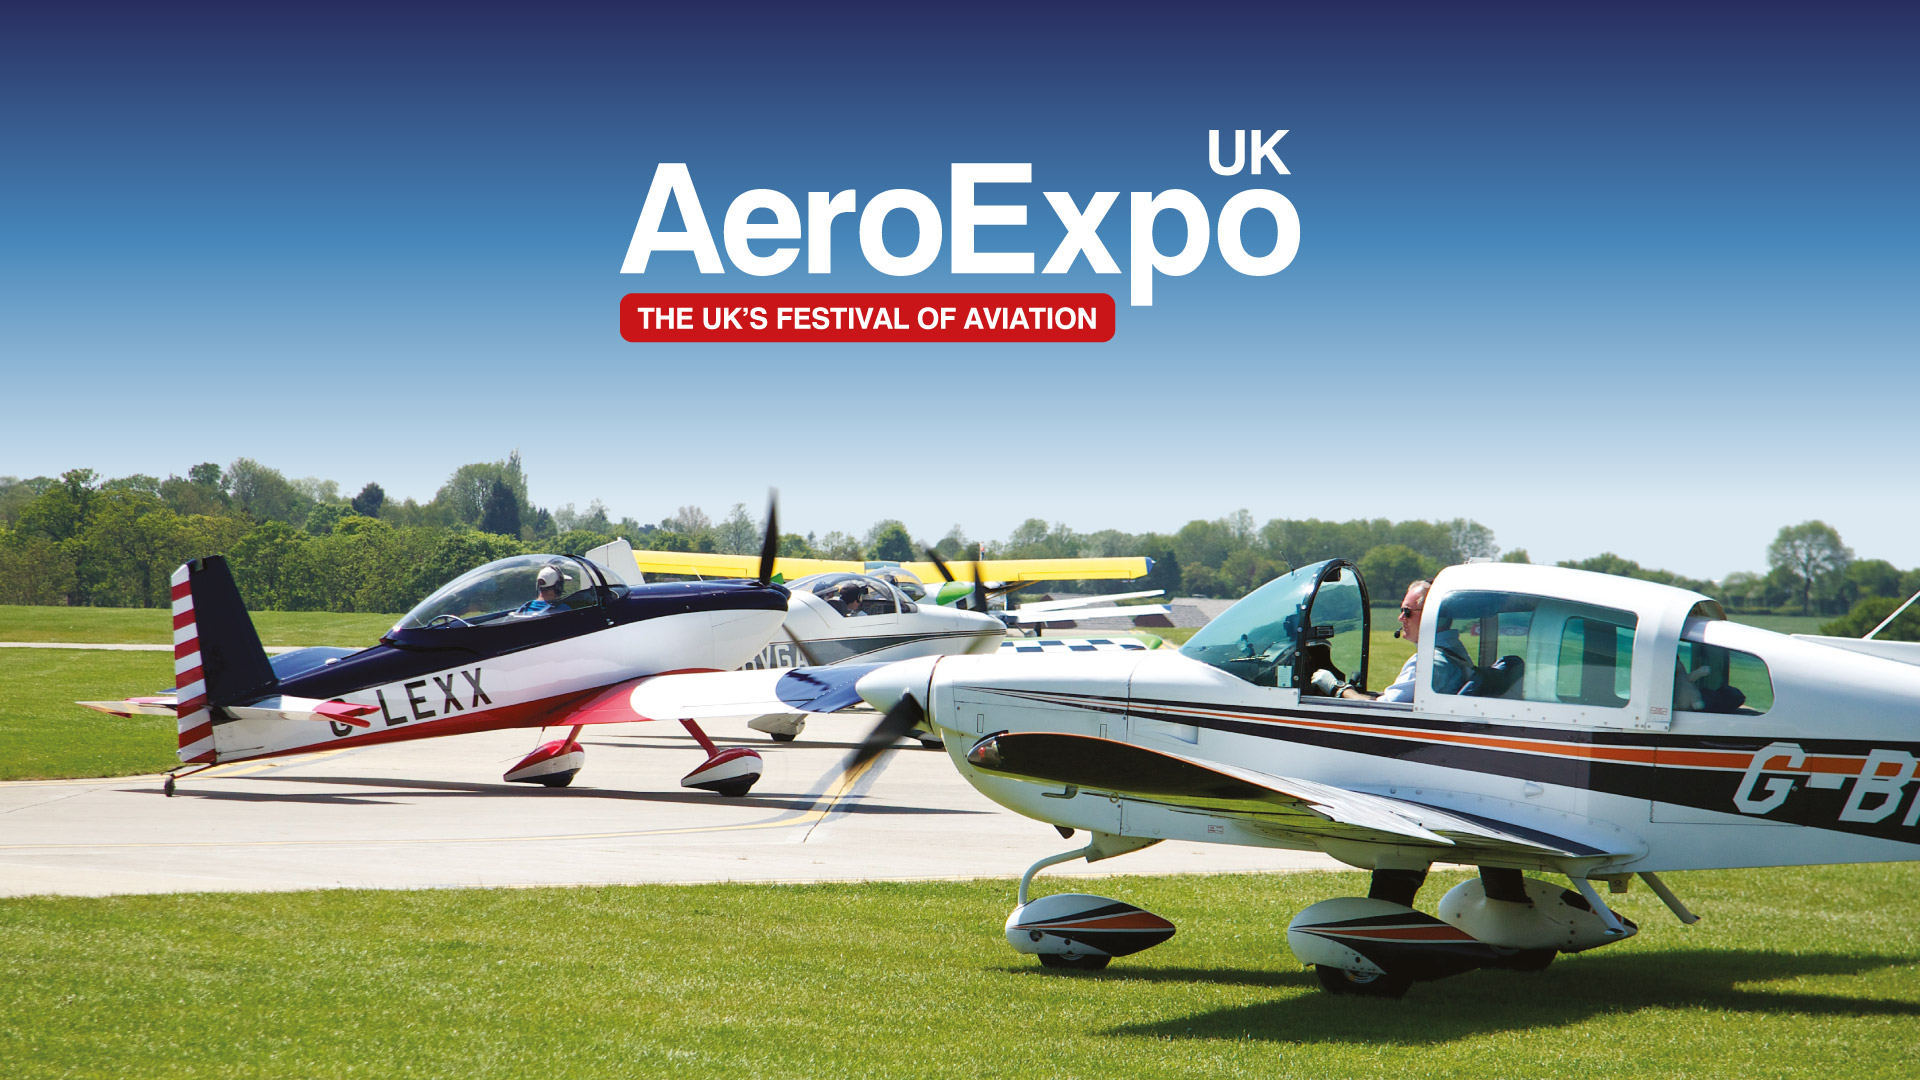 Aviation event print and website design